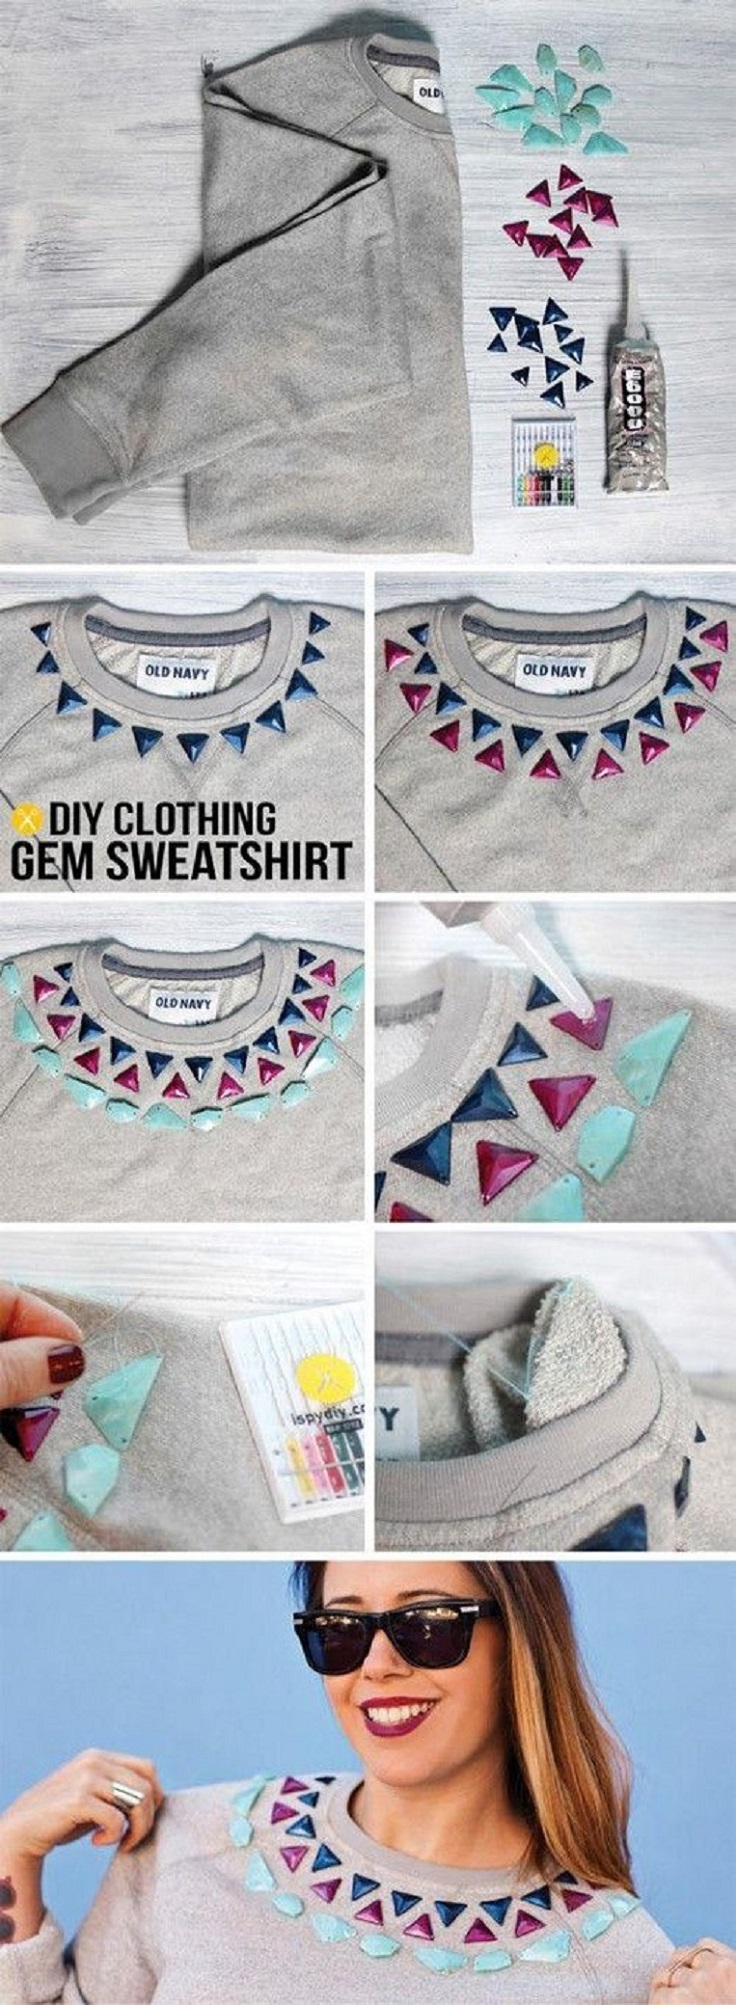 DIY-gem-embellished-sweatshirt